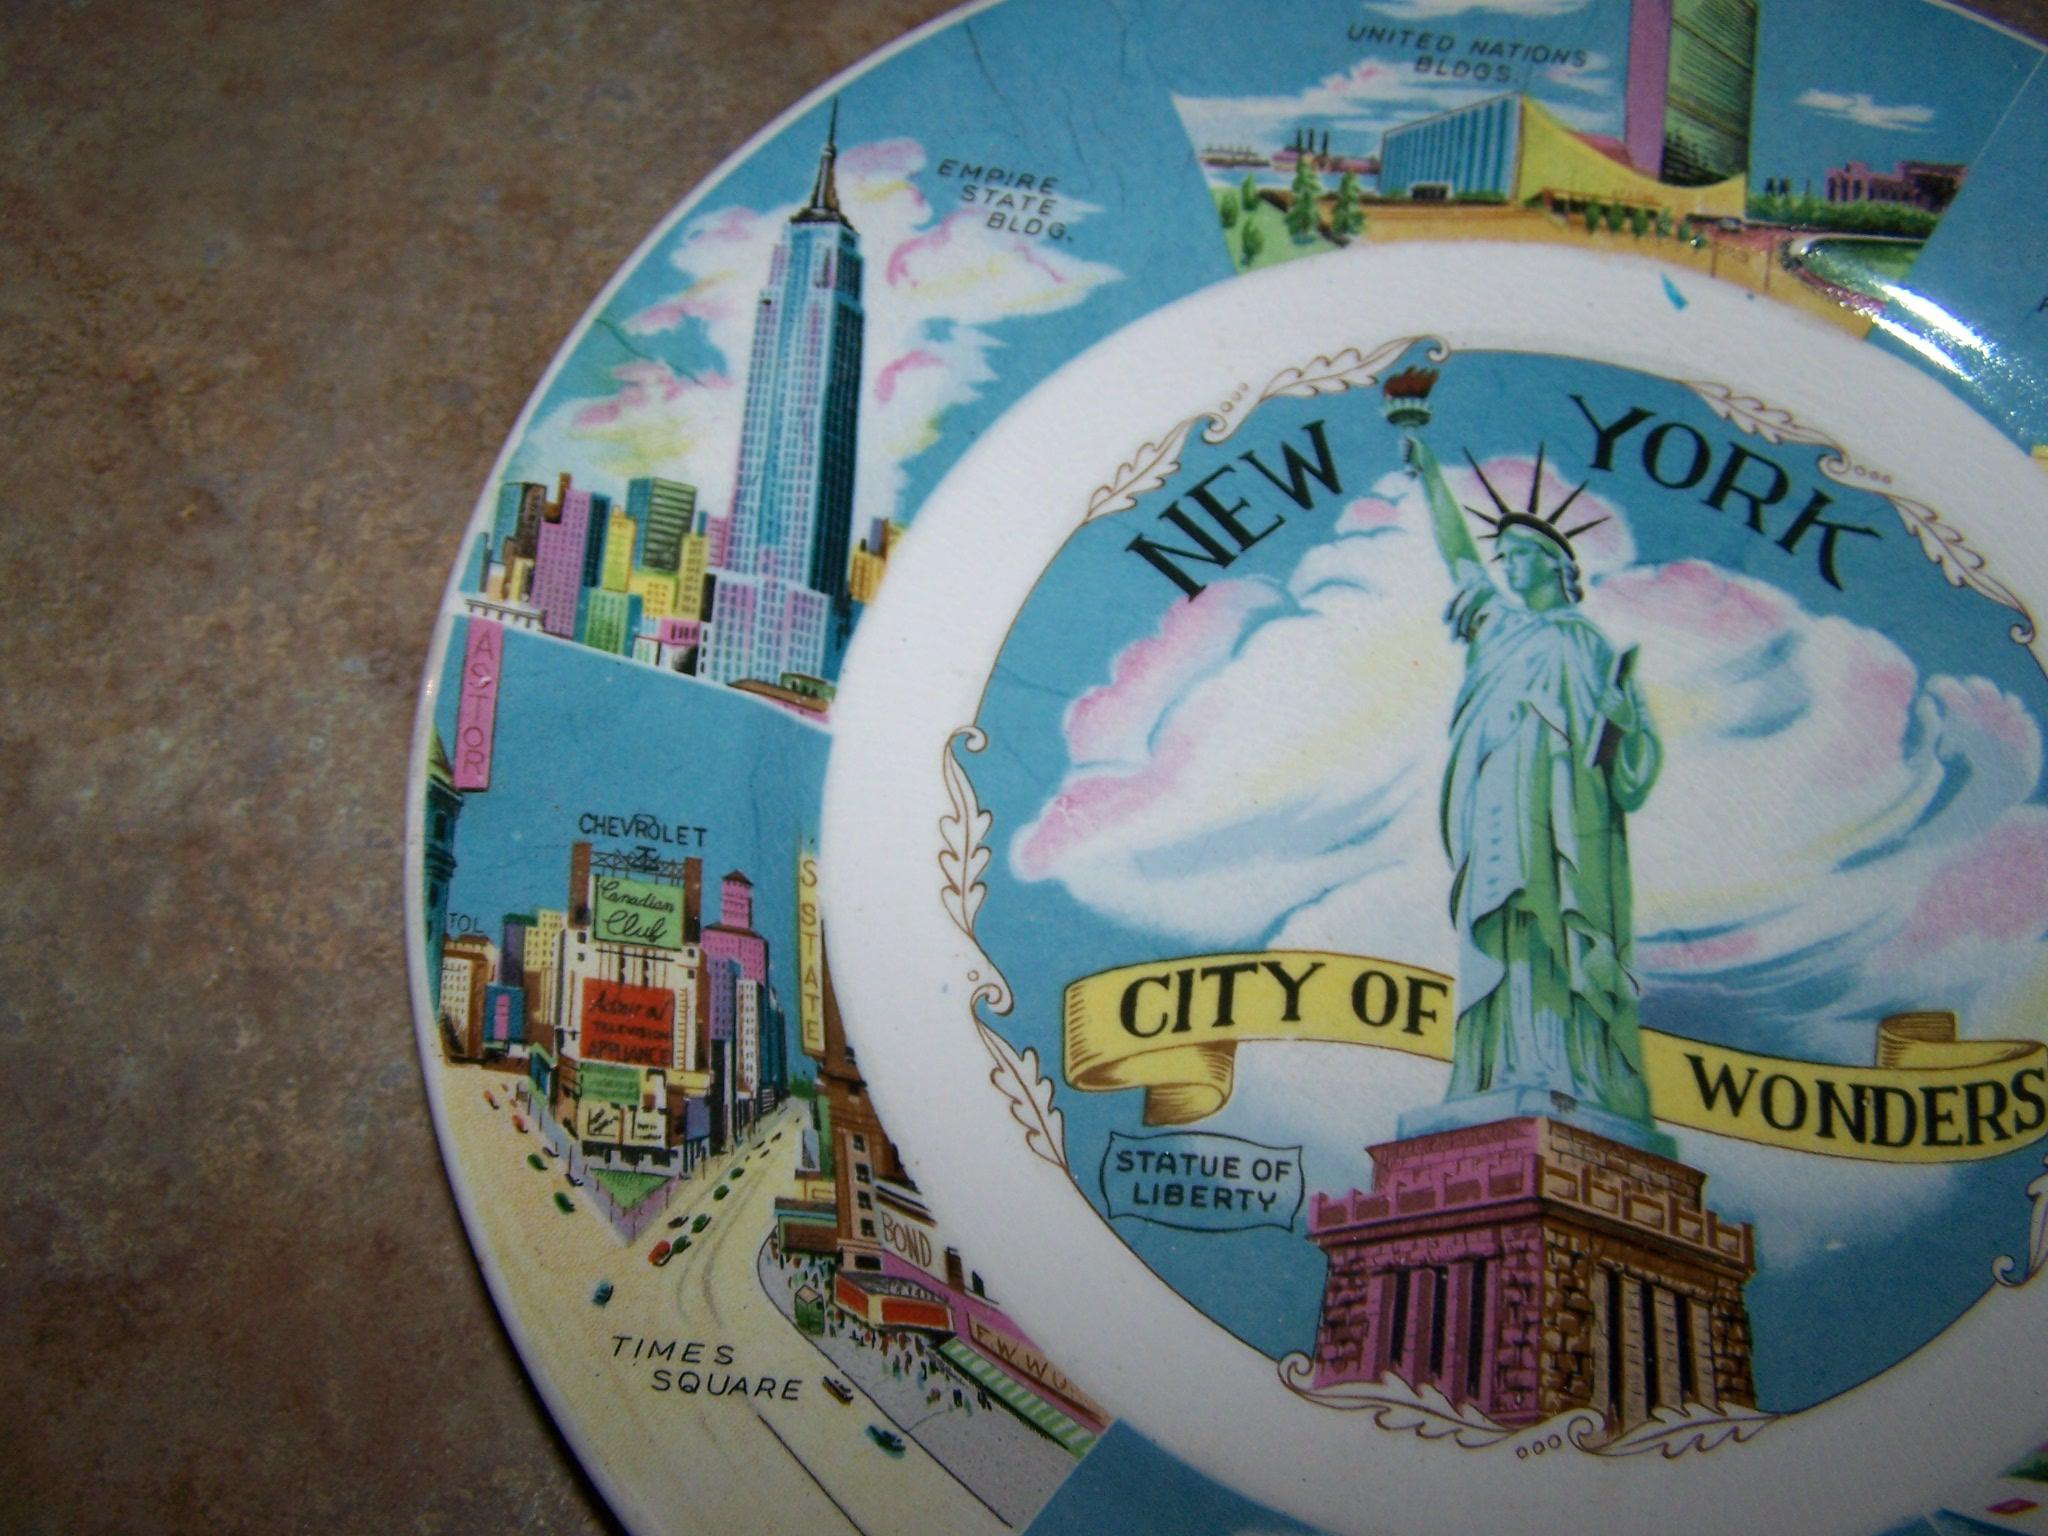 Statue Of Liberty Wall Sticker Collectible Vintage Souvenir Memento Plate Quot New York